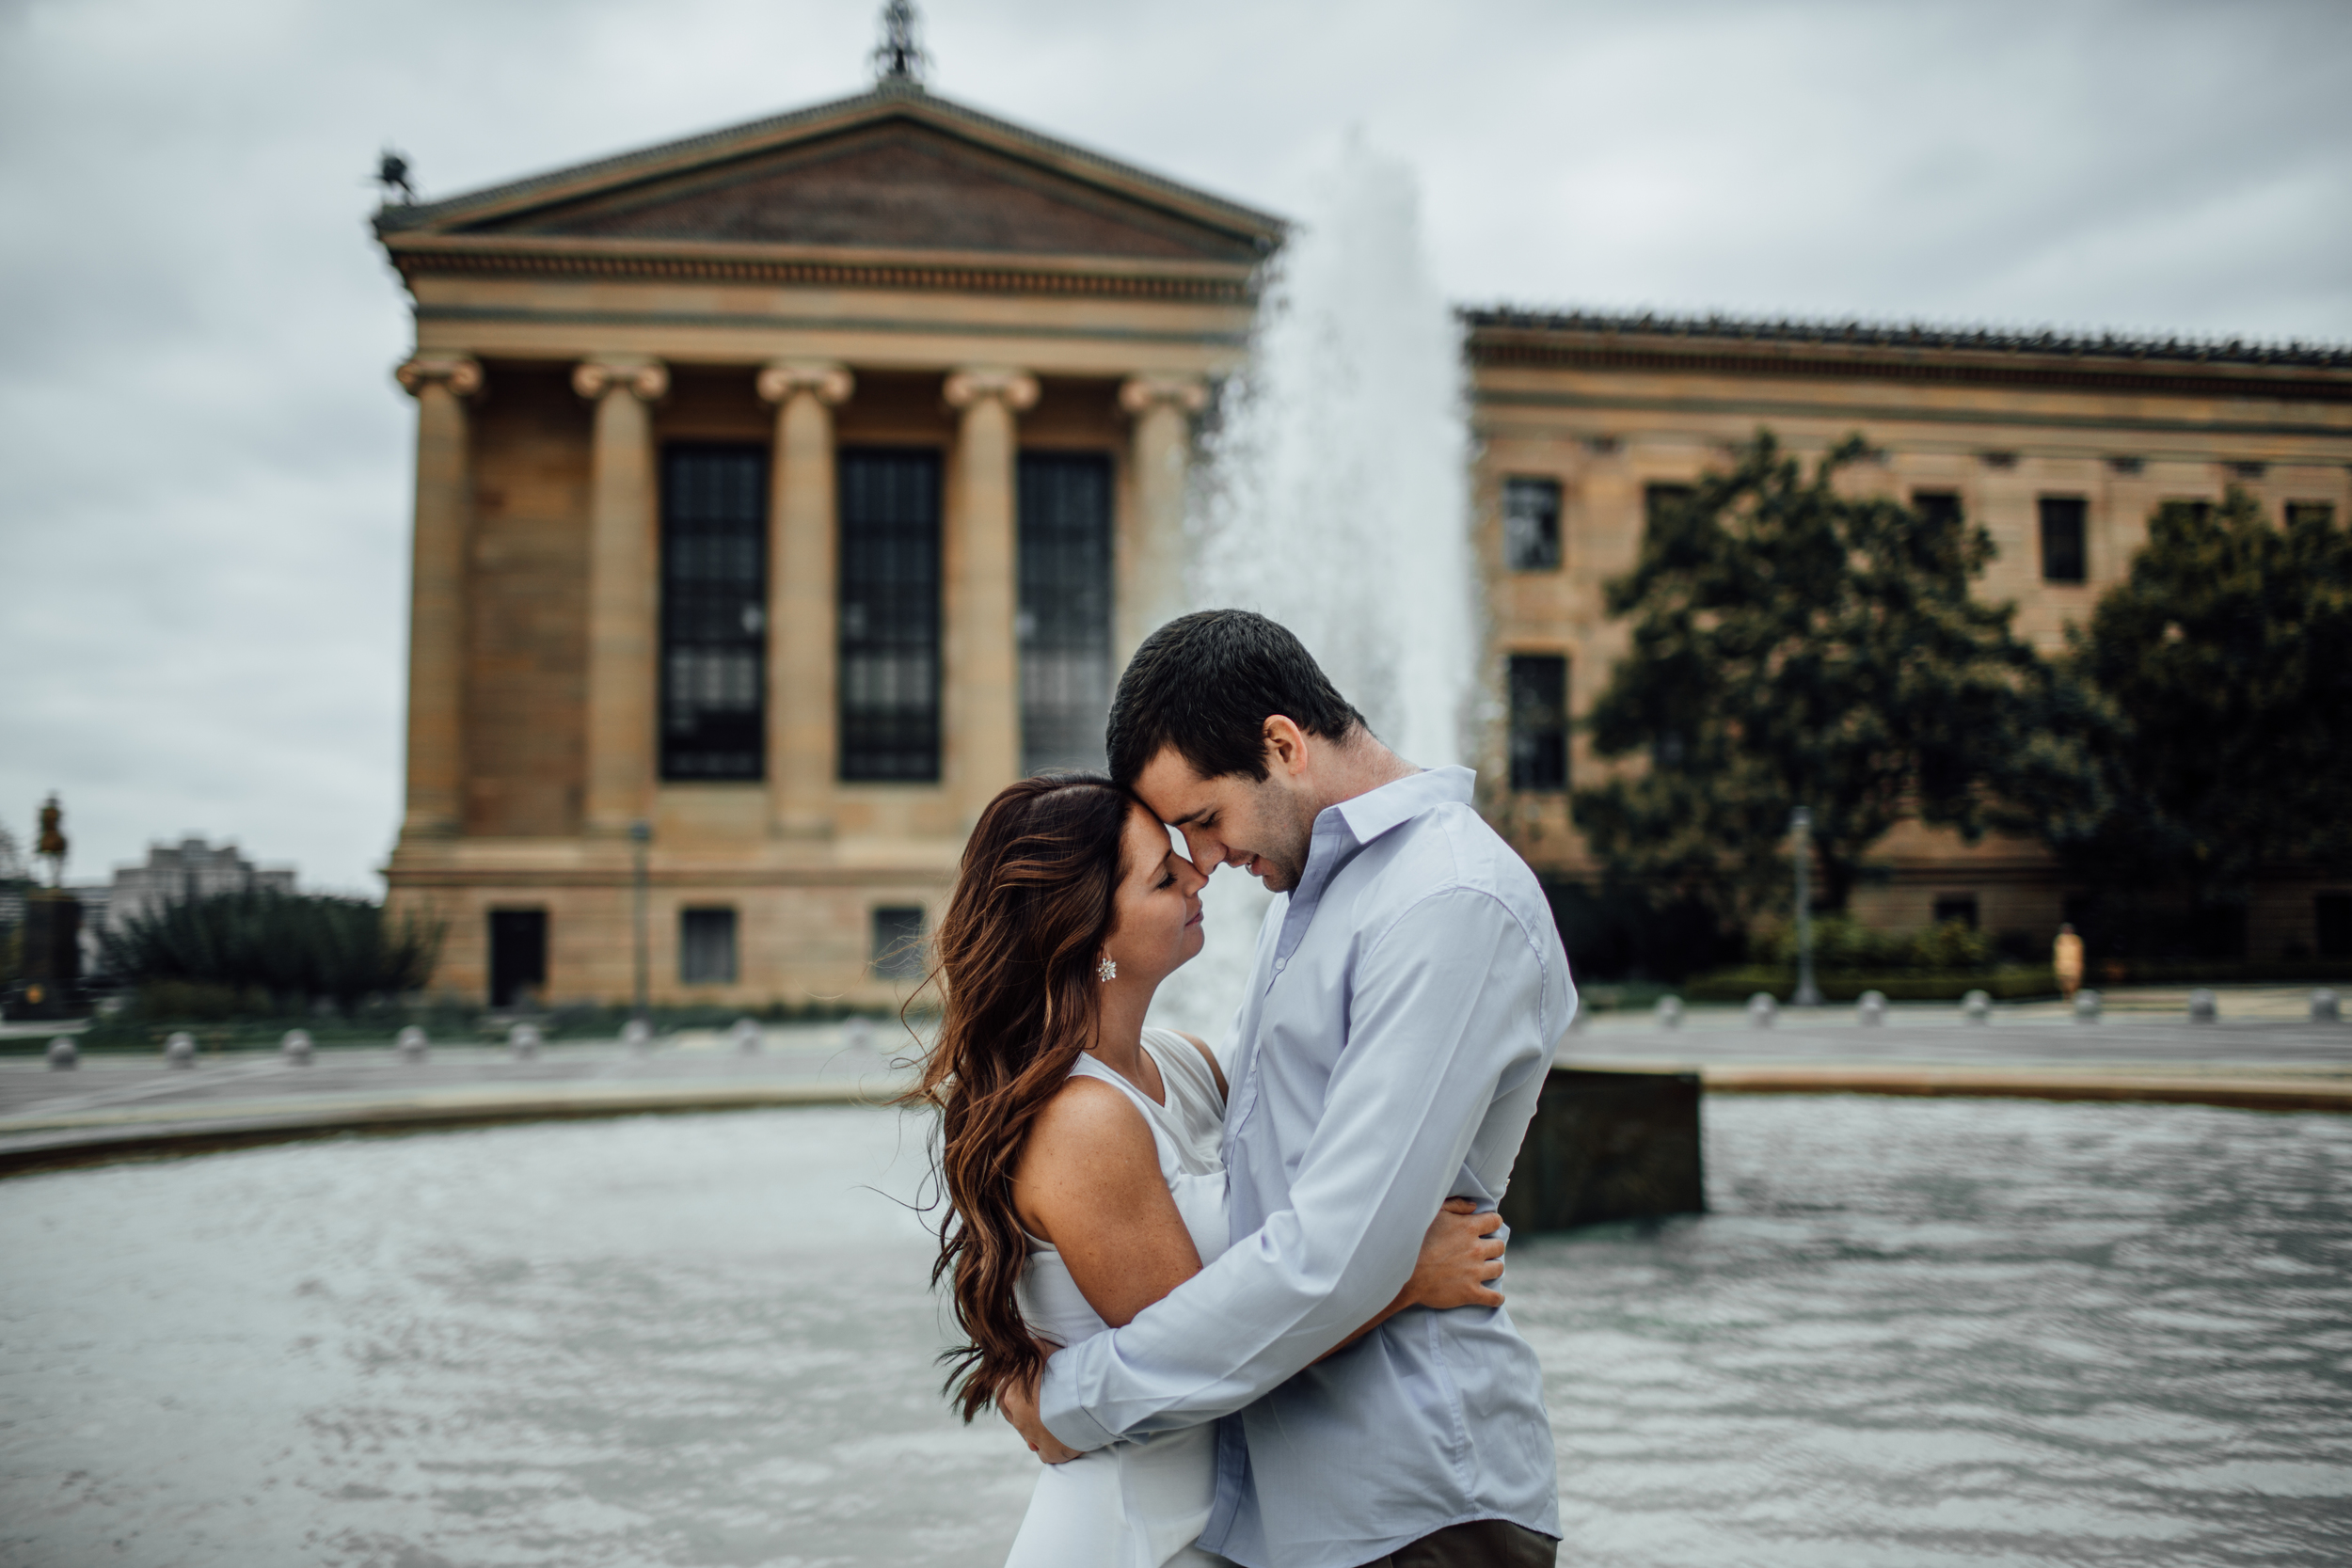 BRITTANYandKEVIN-Engagement2015 (92 of 115).jpg